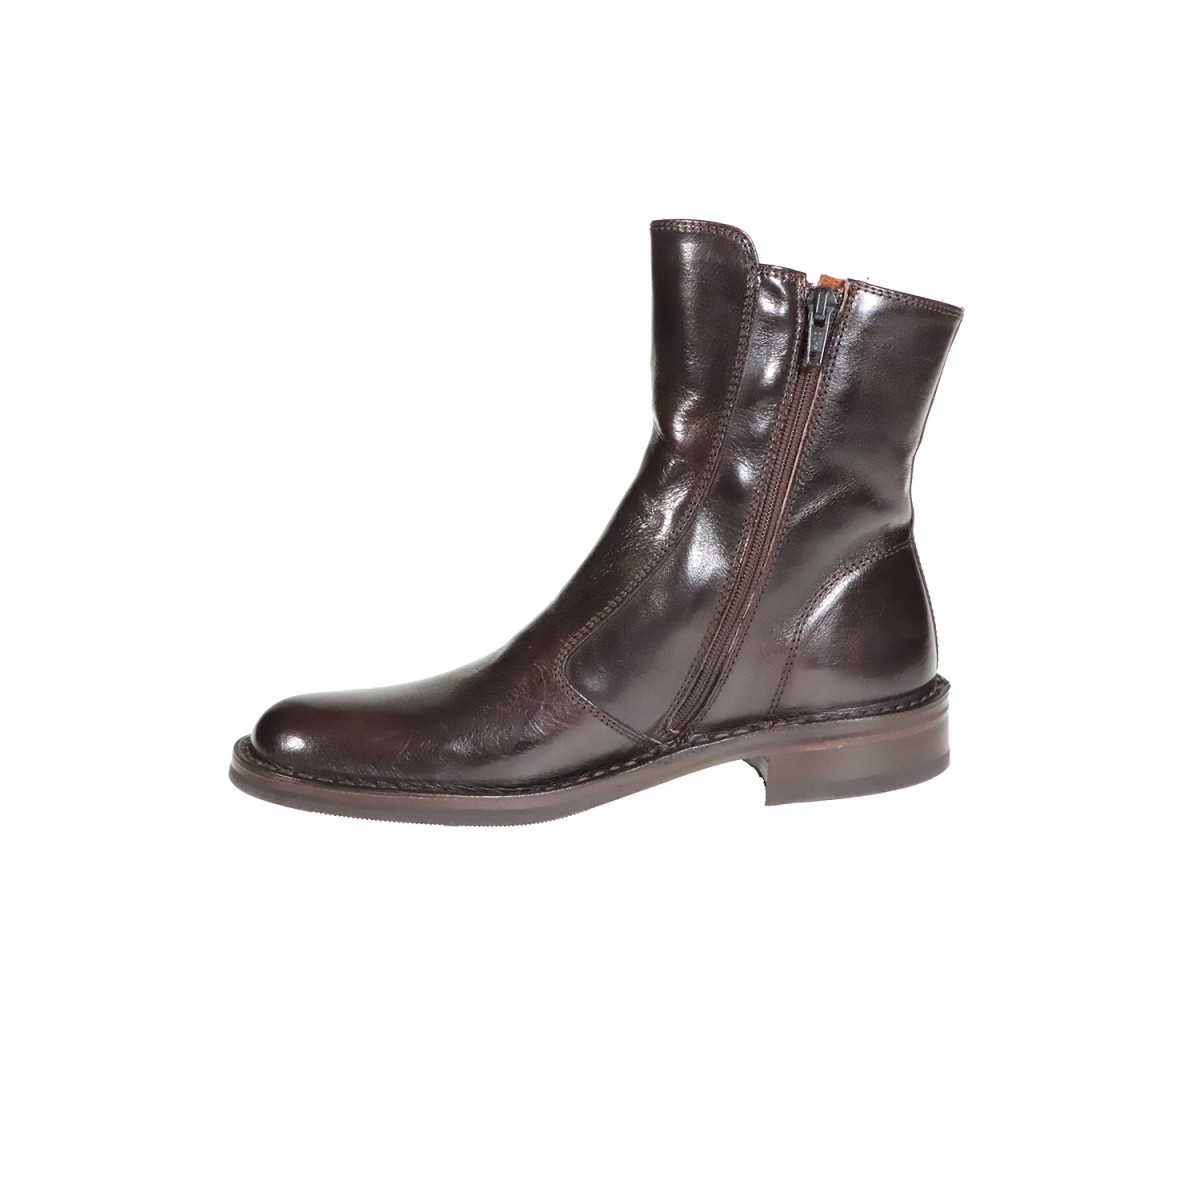 Bubetti 2078 Smart 111 Brown-31